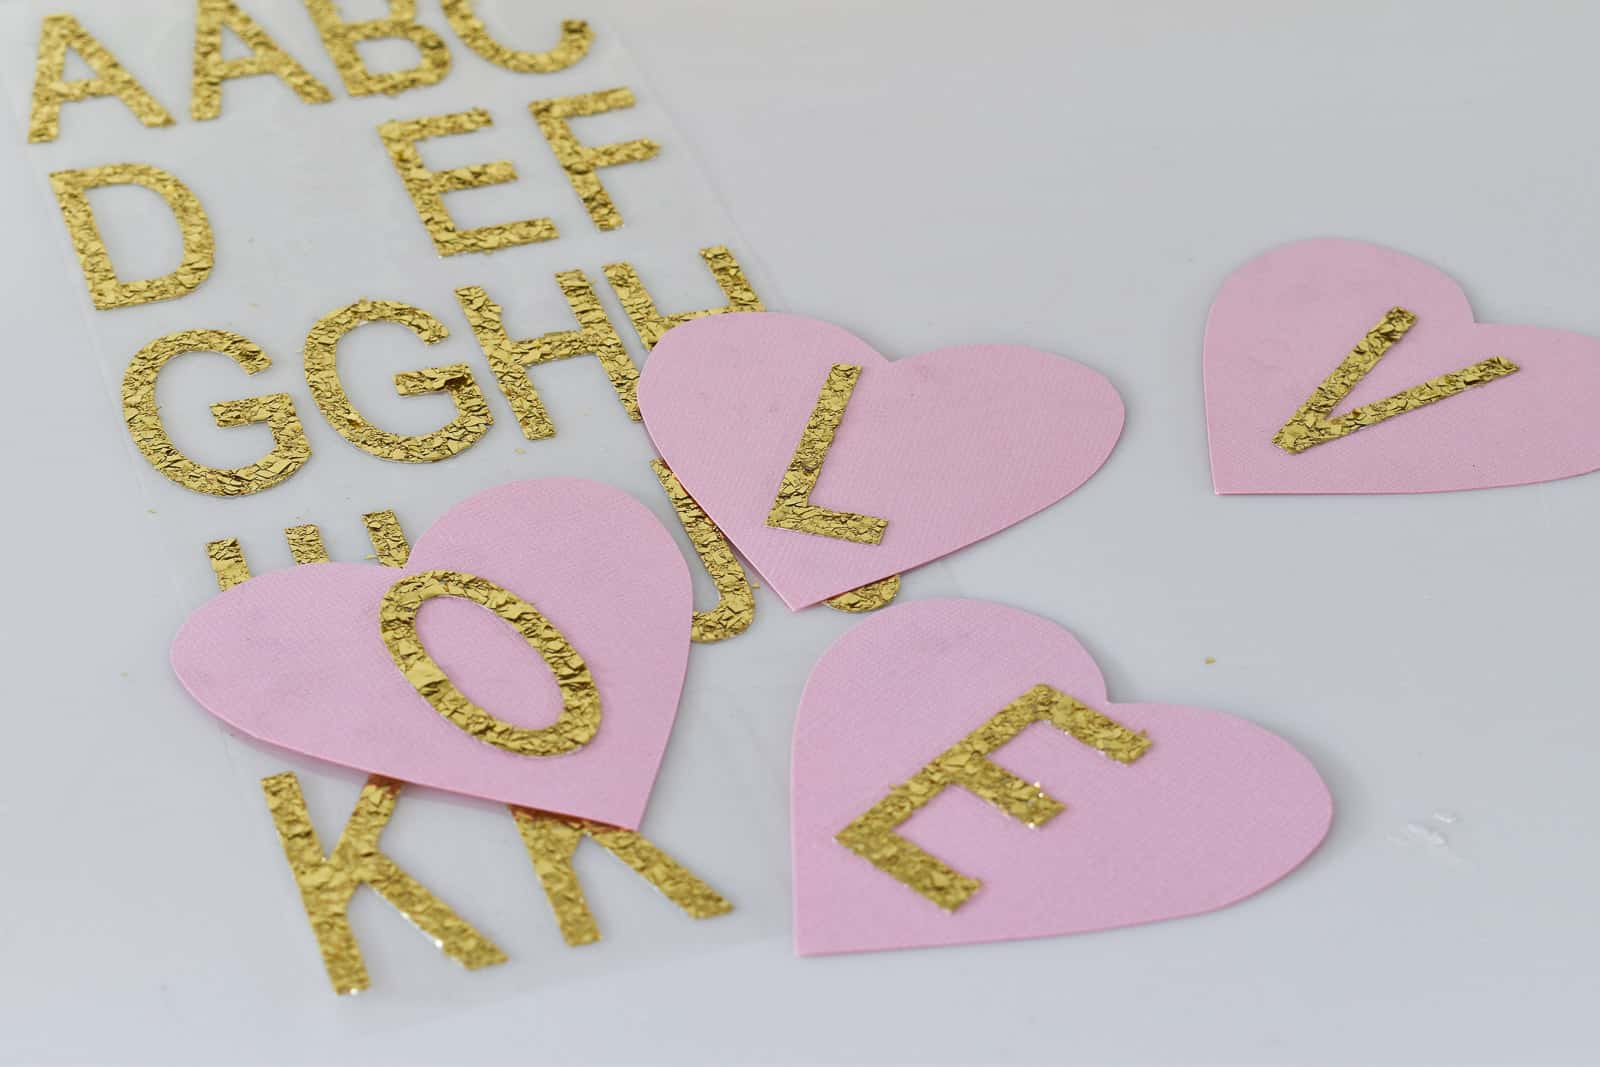 place stickers onto paper hearts